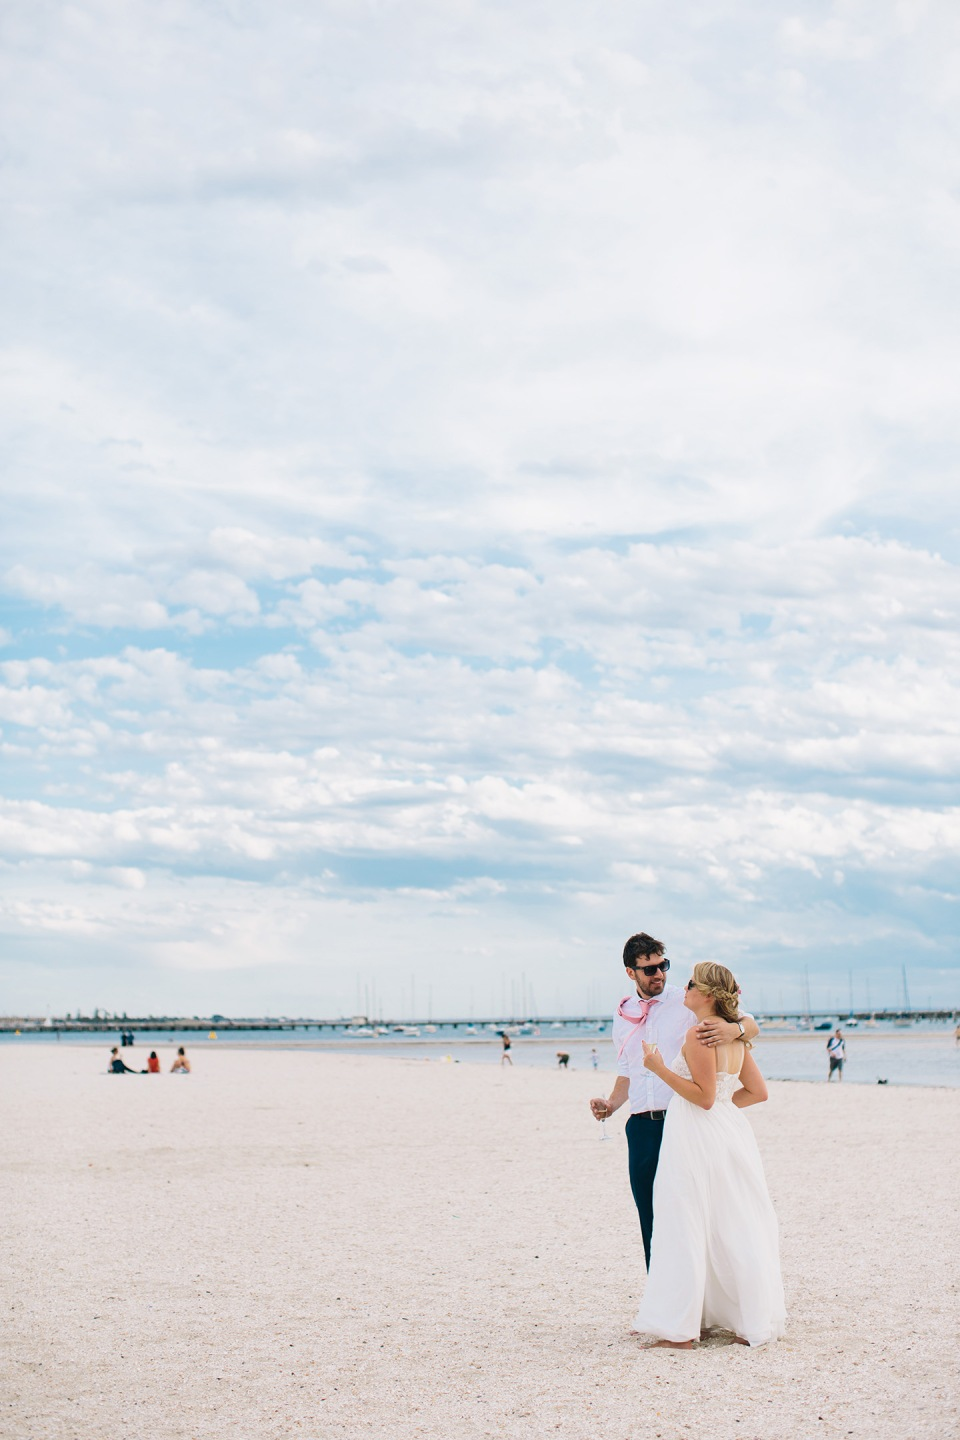 Bathers pavilion wedding photos | St Kilda | fotojojo